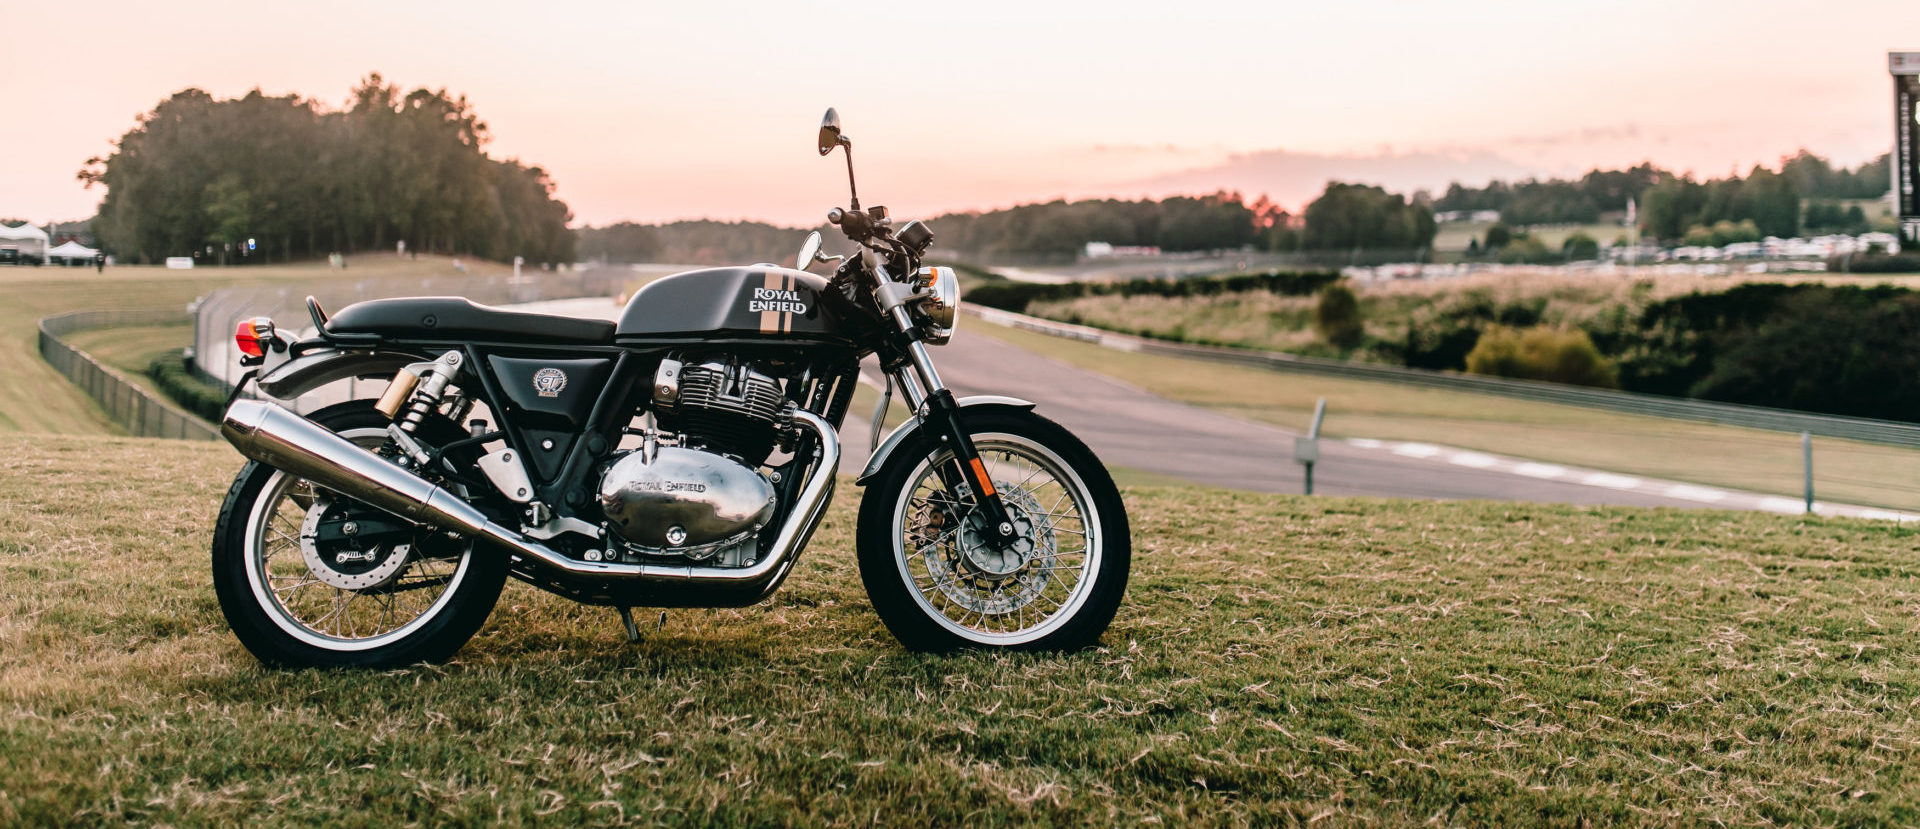 A Royal Enfield Continental GT 650 at Barber Motorsports Park. Photo by Brandon Lajoie, courtesy MotoAmerica.